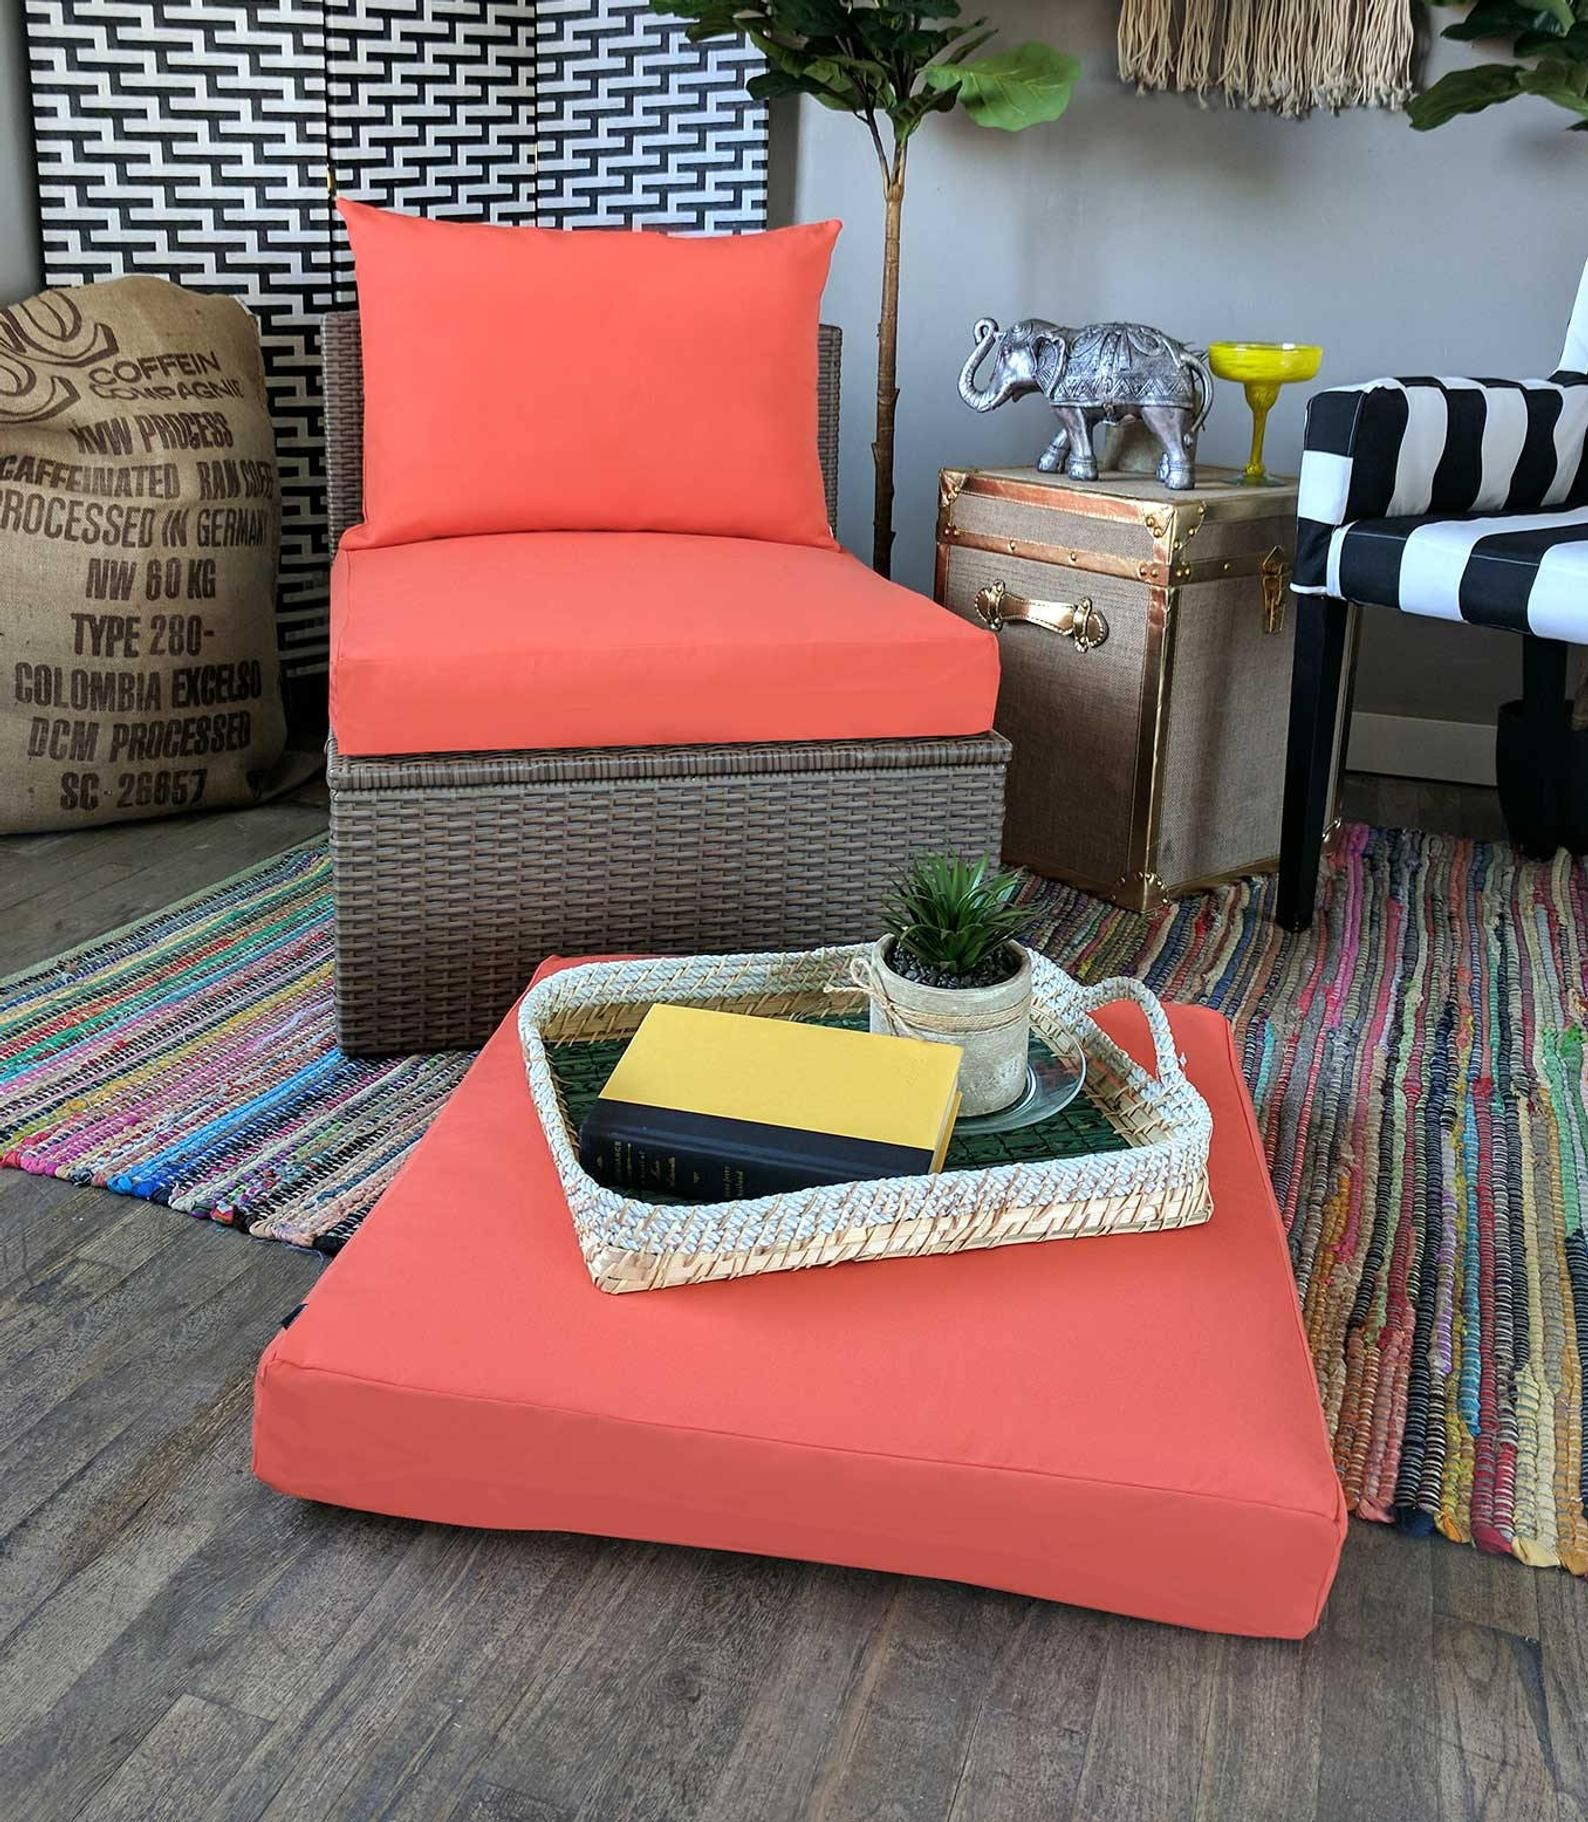 Ikea Outdoor Furniture With Sunbrella Slip Cover Solid Coral Pink Melon Ikeaf Outdoor Furniture Cushions Ikea Outdoor Furniture Outdoor Patio Furniture Cover